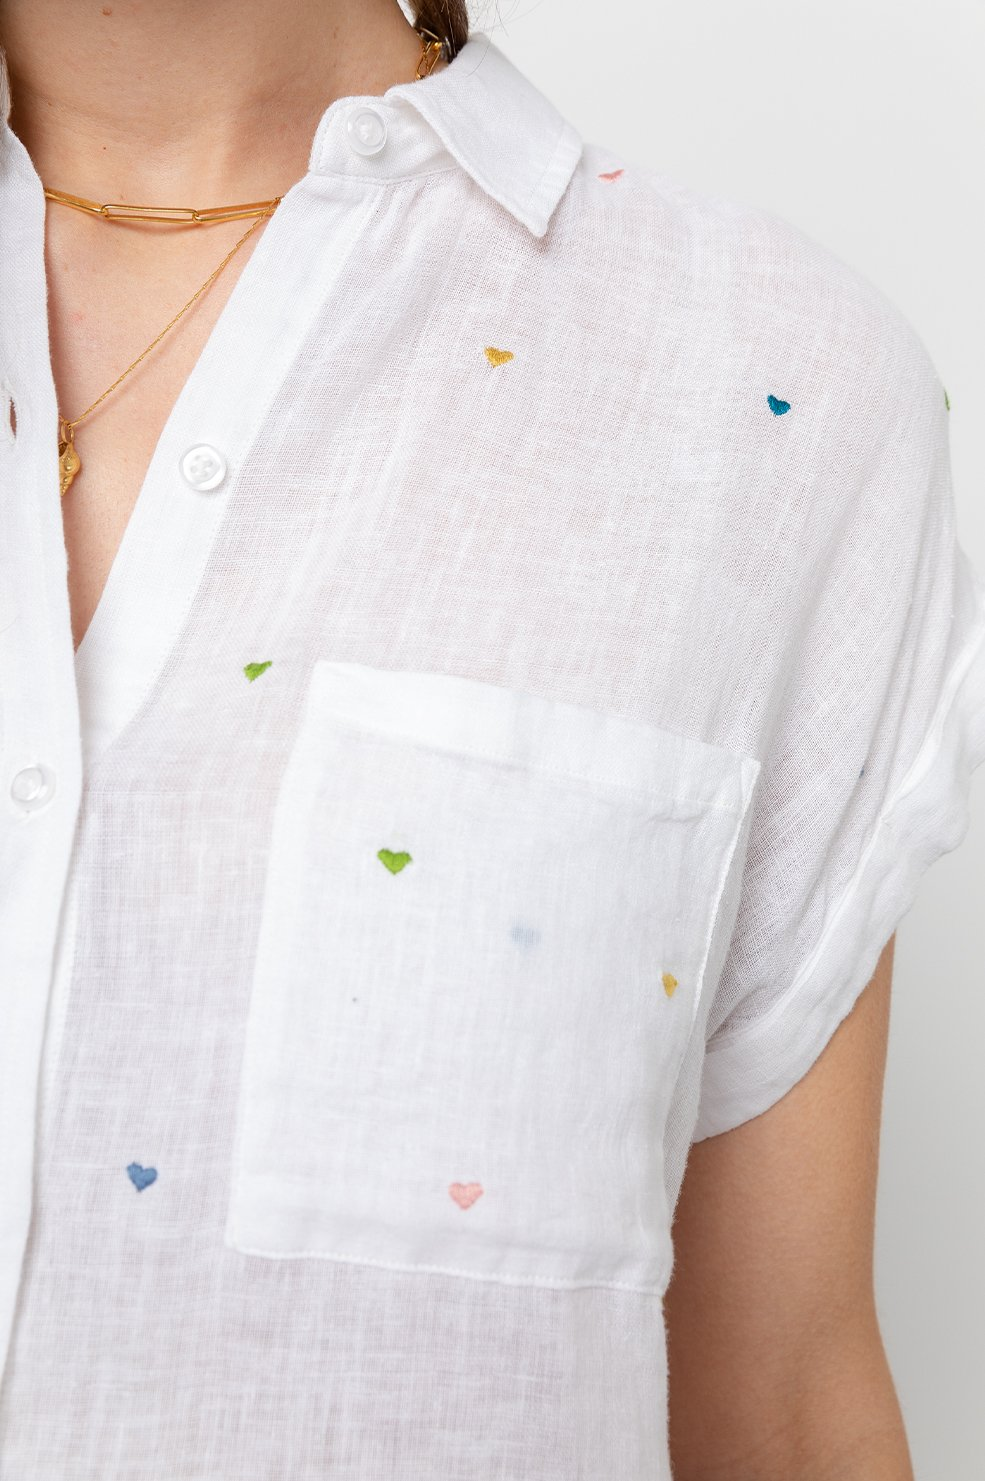 WHITNEY - WHITE EMBROIDERED HEARTS by Rails - 4